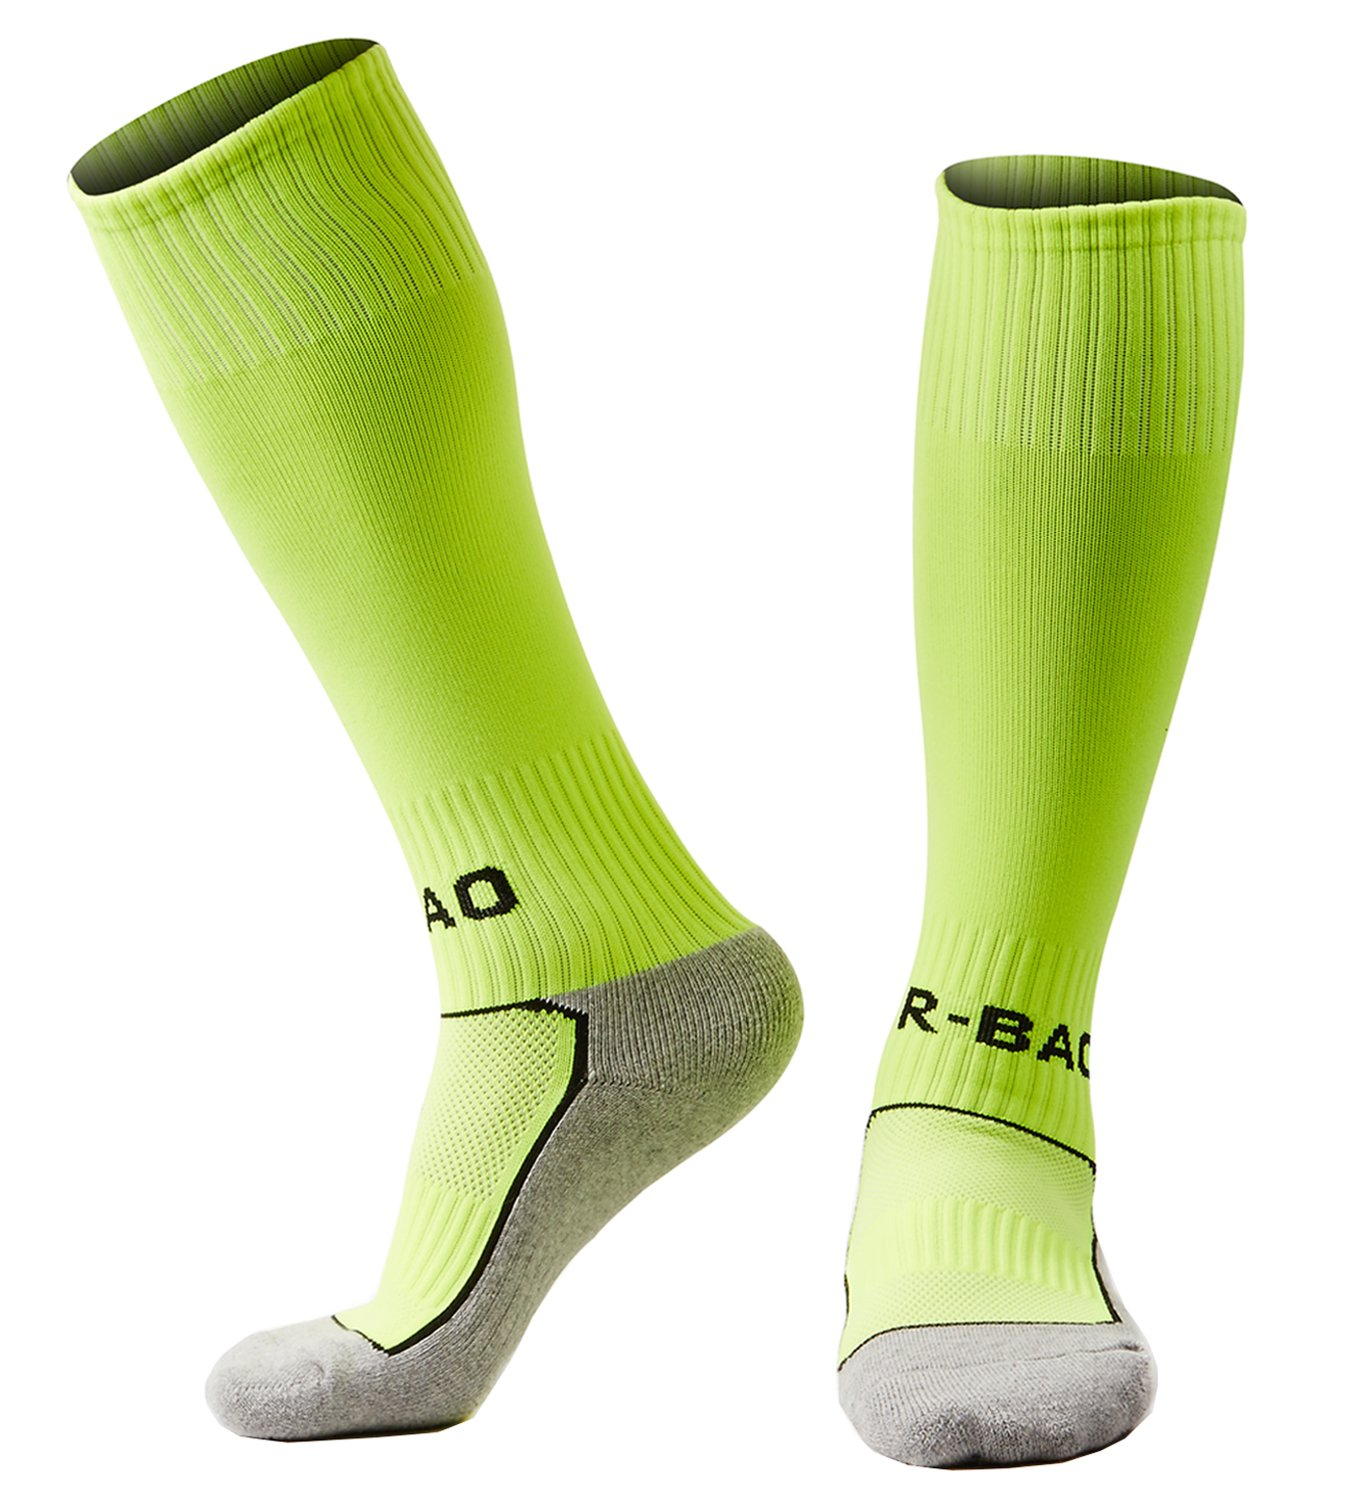 laventoボーイズ/ガールズクッションover the calf Soccer Socks B07BGYS5M9 M (Youth's shoes size 2Y-6)|1 Pack-Neon green 1 Pack-Neon green M (Youth's shoes size 2Y-6)